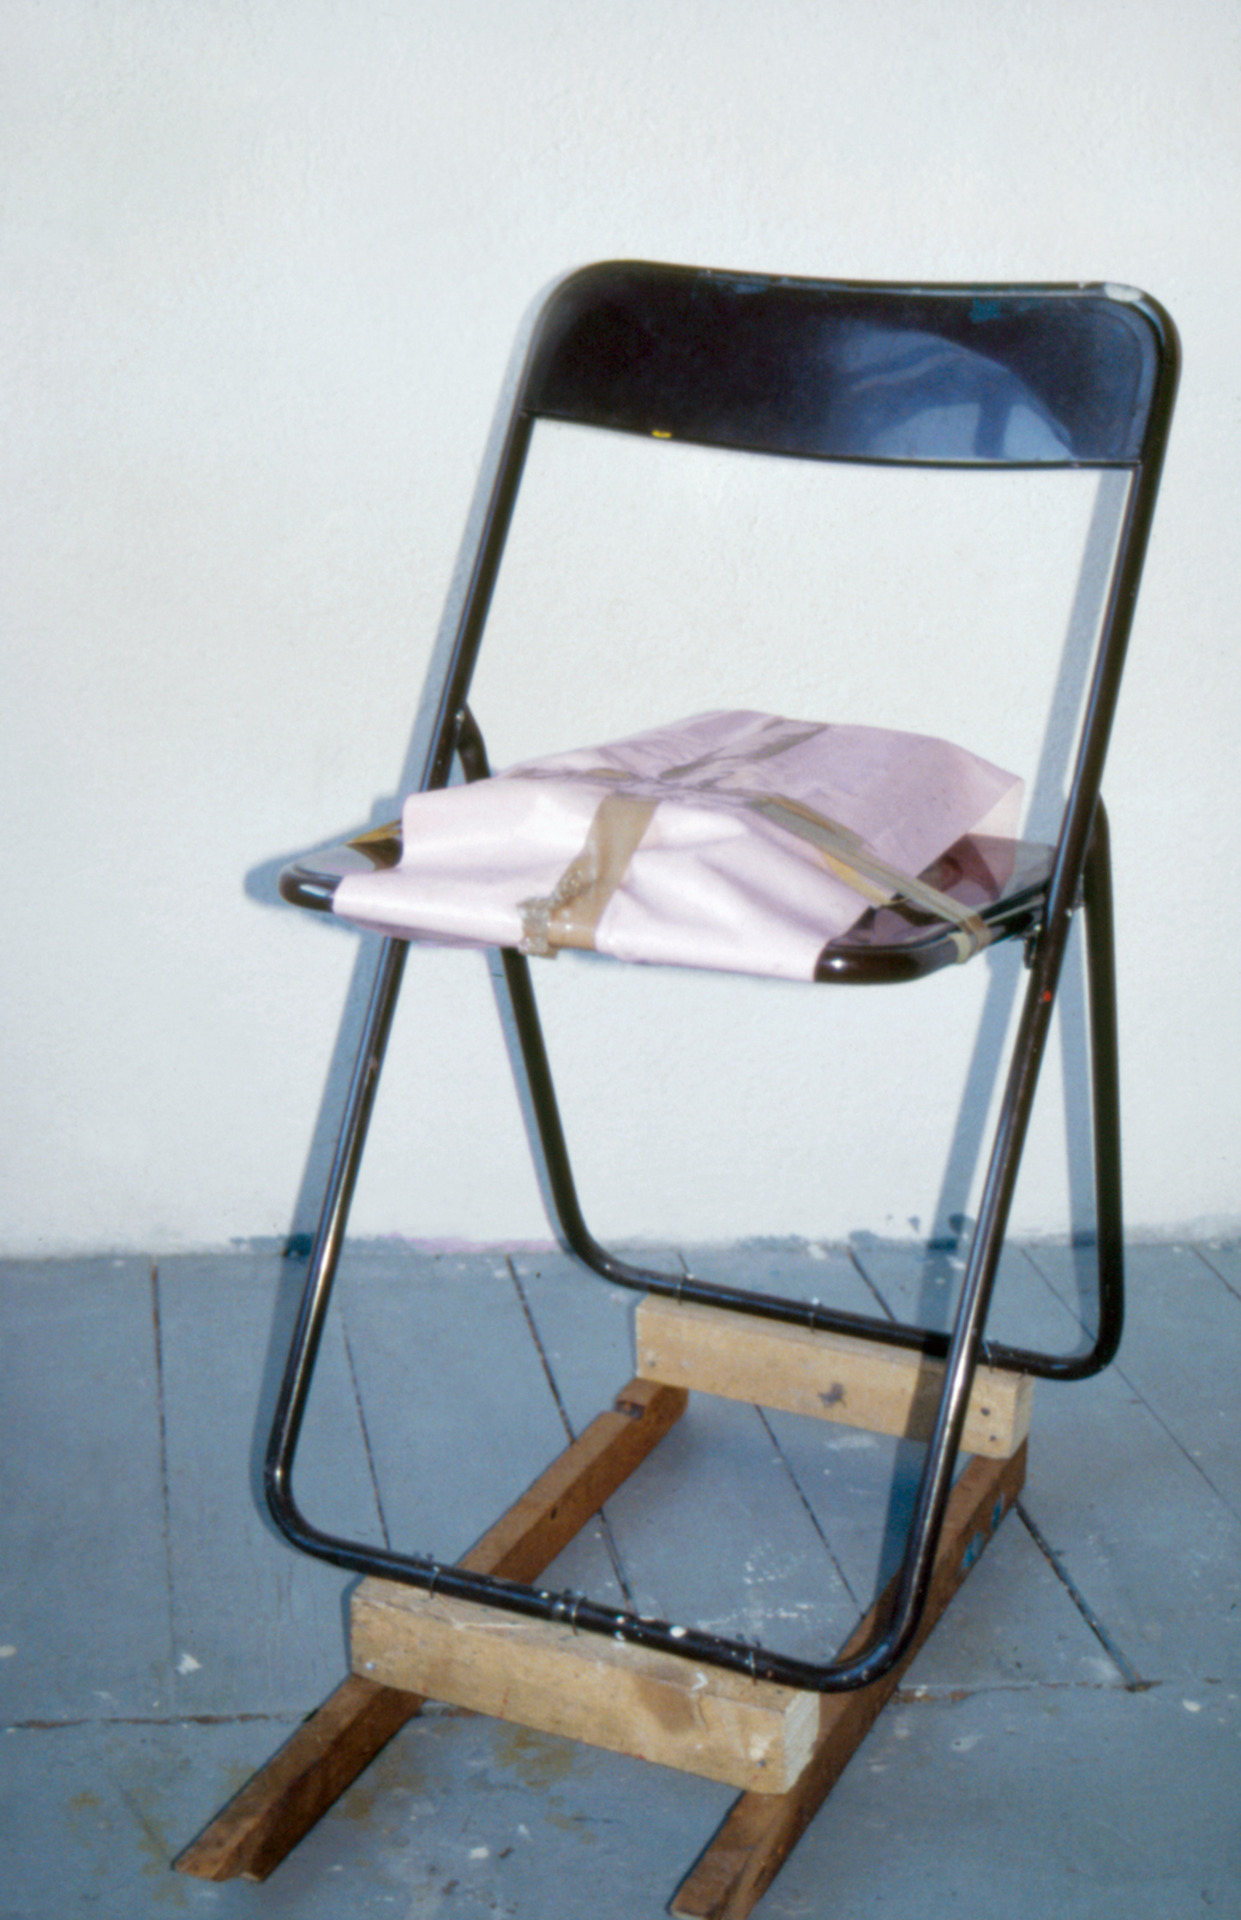 Untitled (Chair for a Table That Was Too Tall)